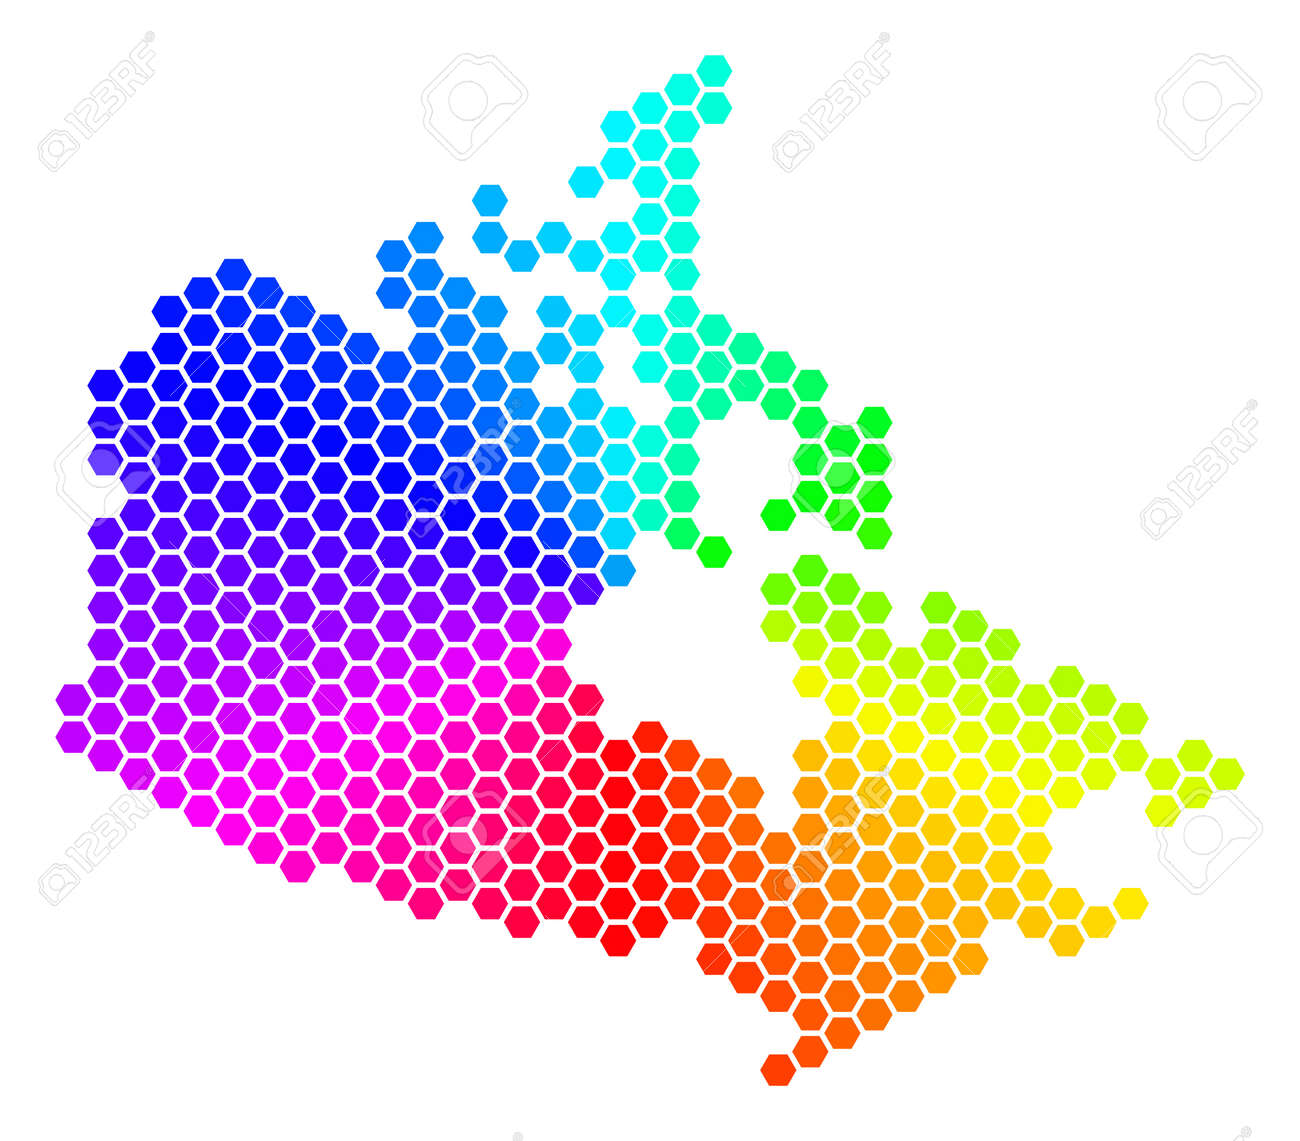 Colored Map Of Canada.Spectrum Hexagon Canada Map Raster Geographic Map In Rainbow